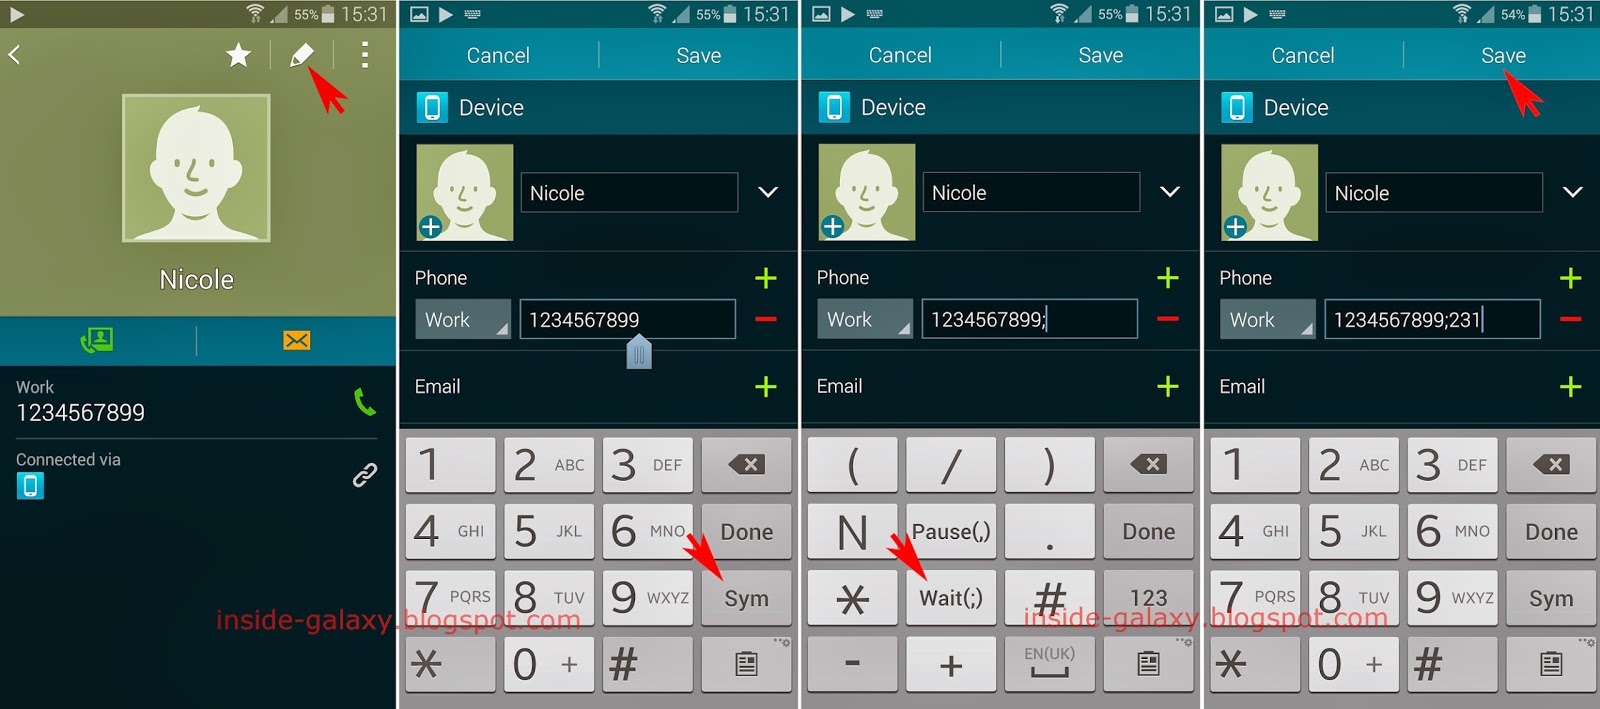 Samsung Galaxy S5: How to Add a Wait Into a Contact in